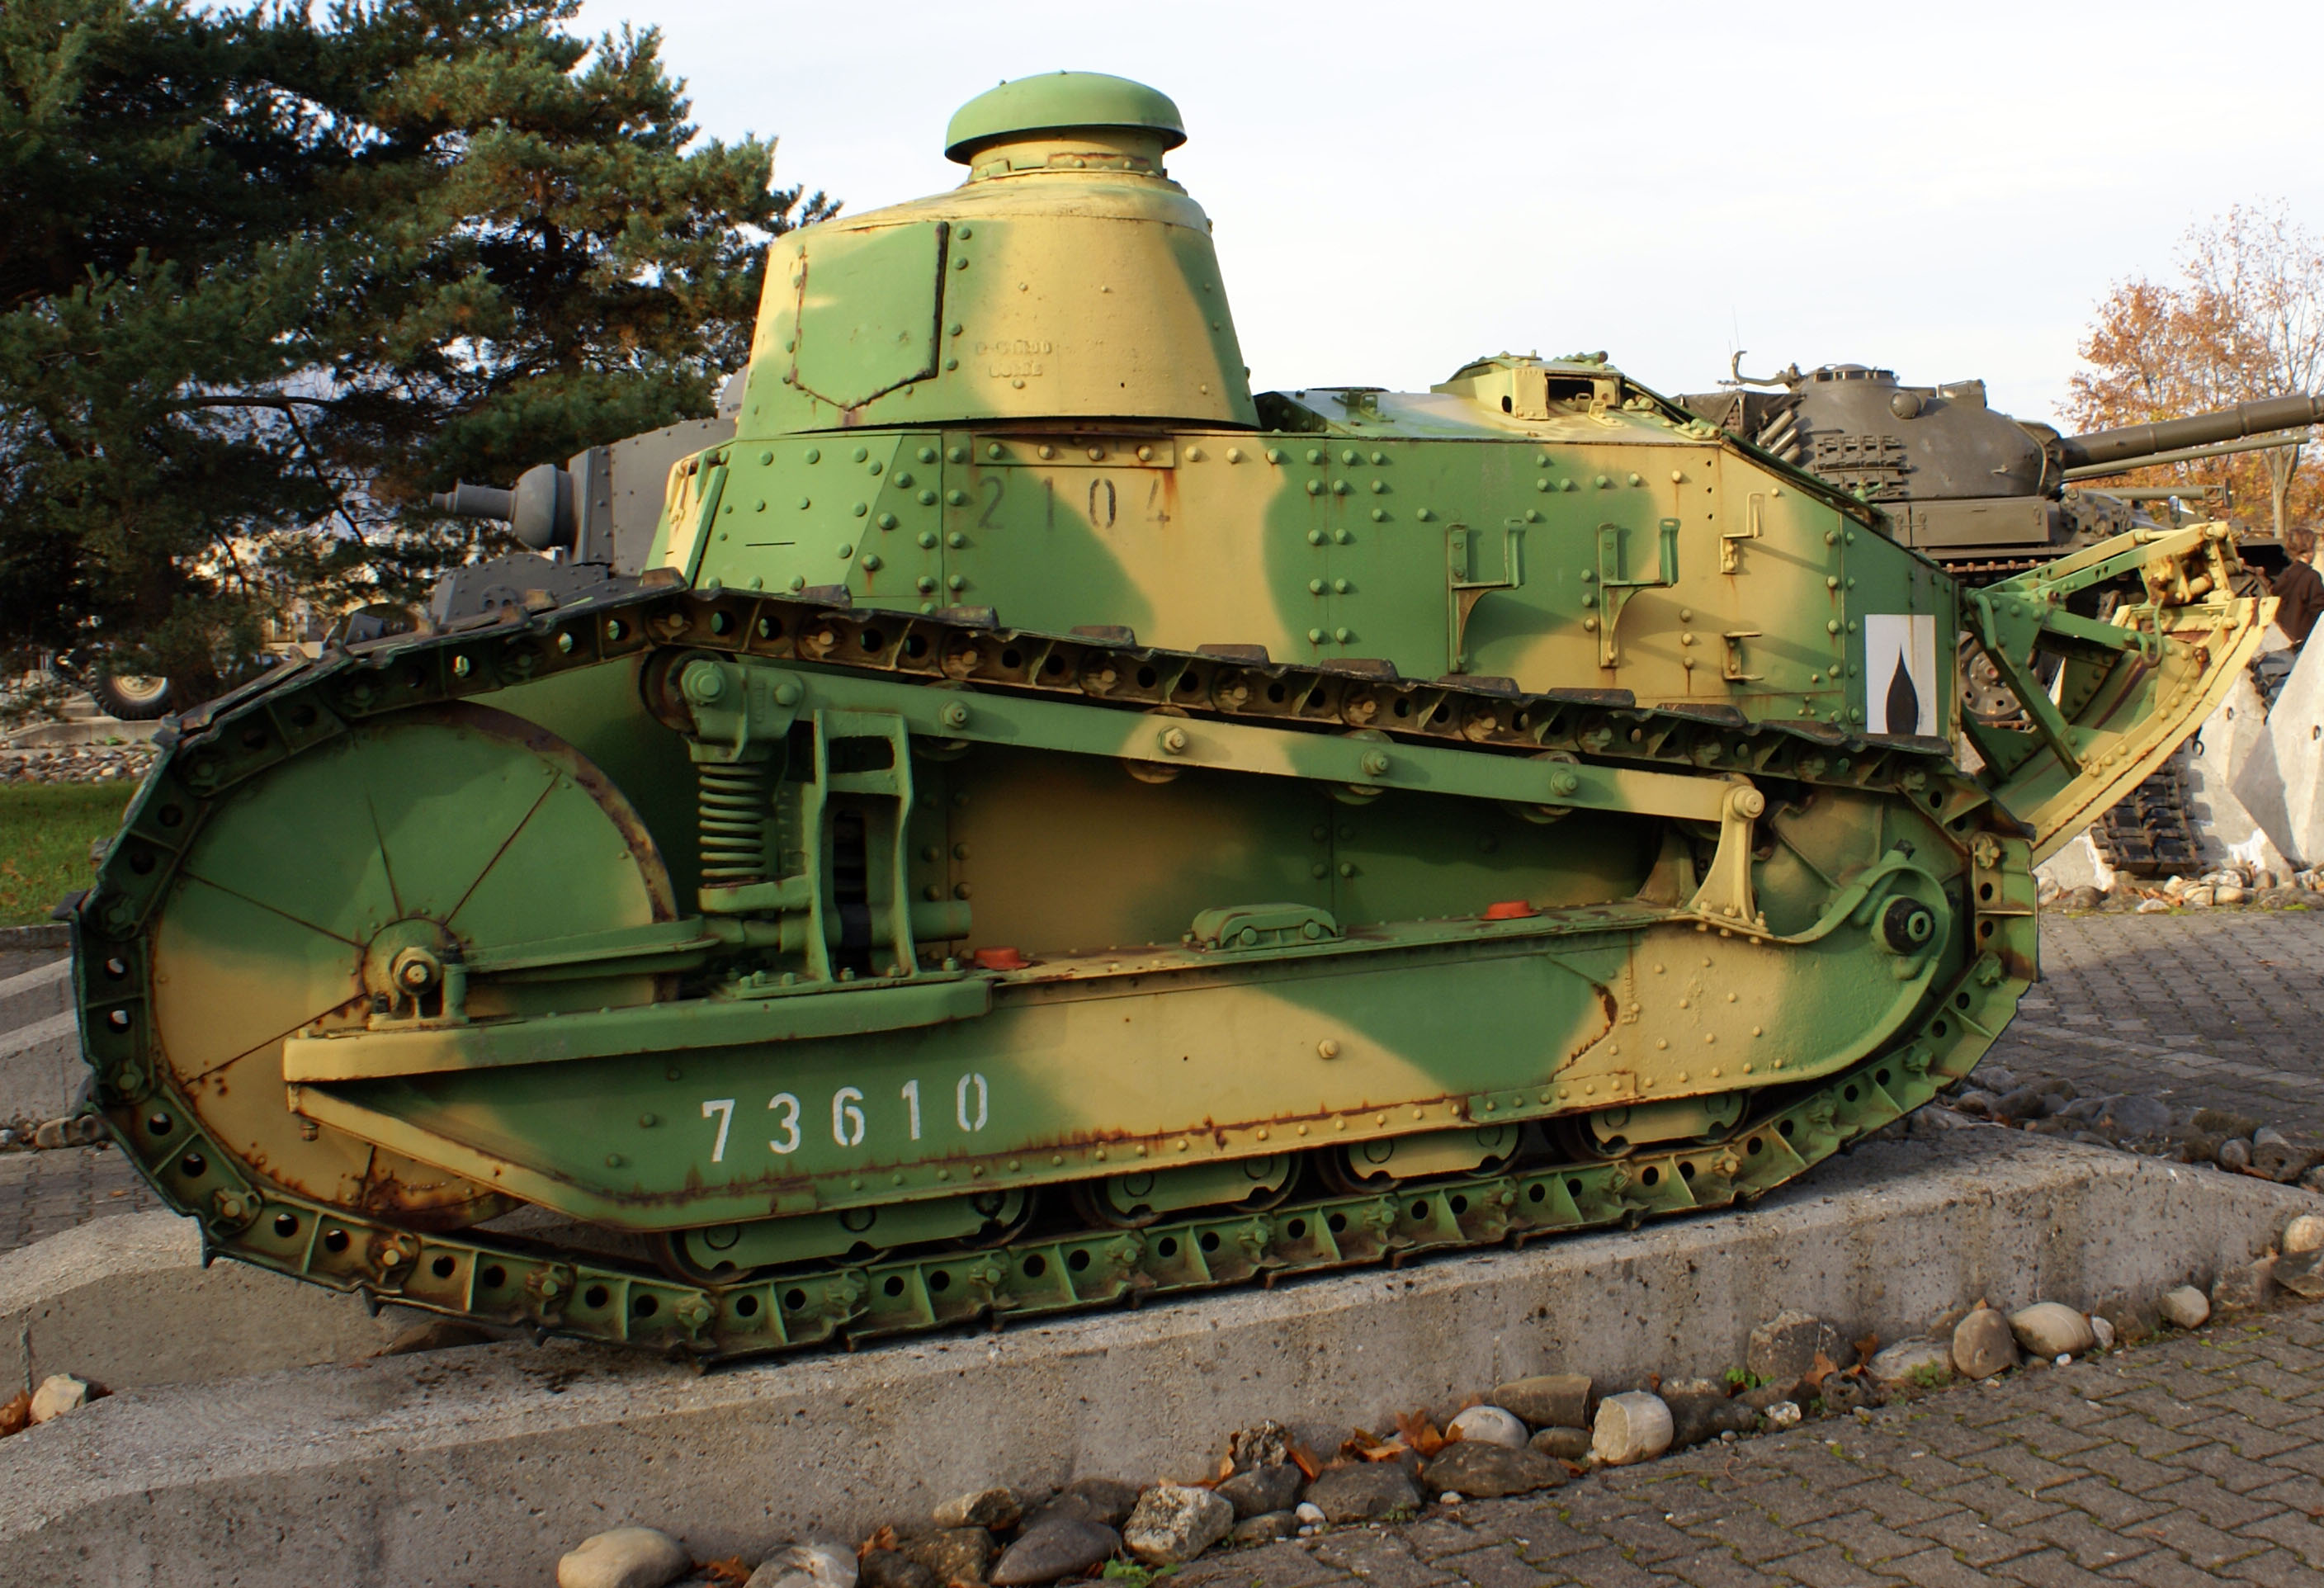 Renault ft-17 photo - 1